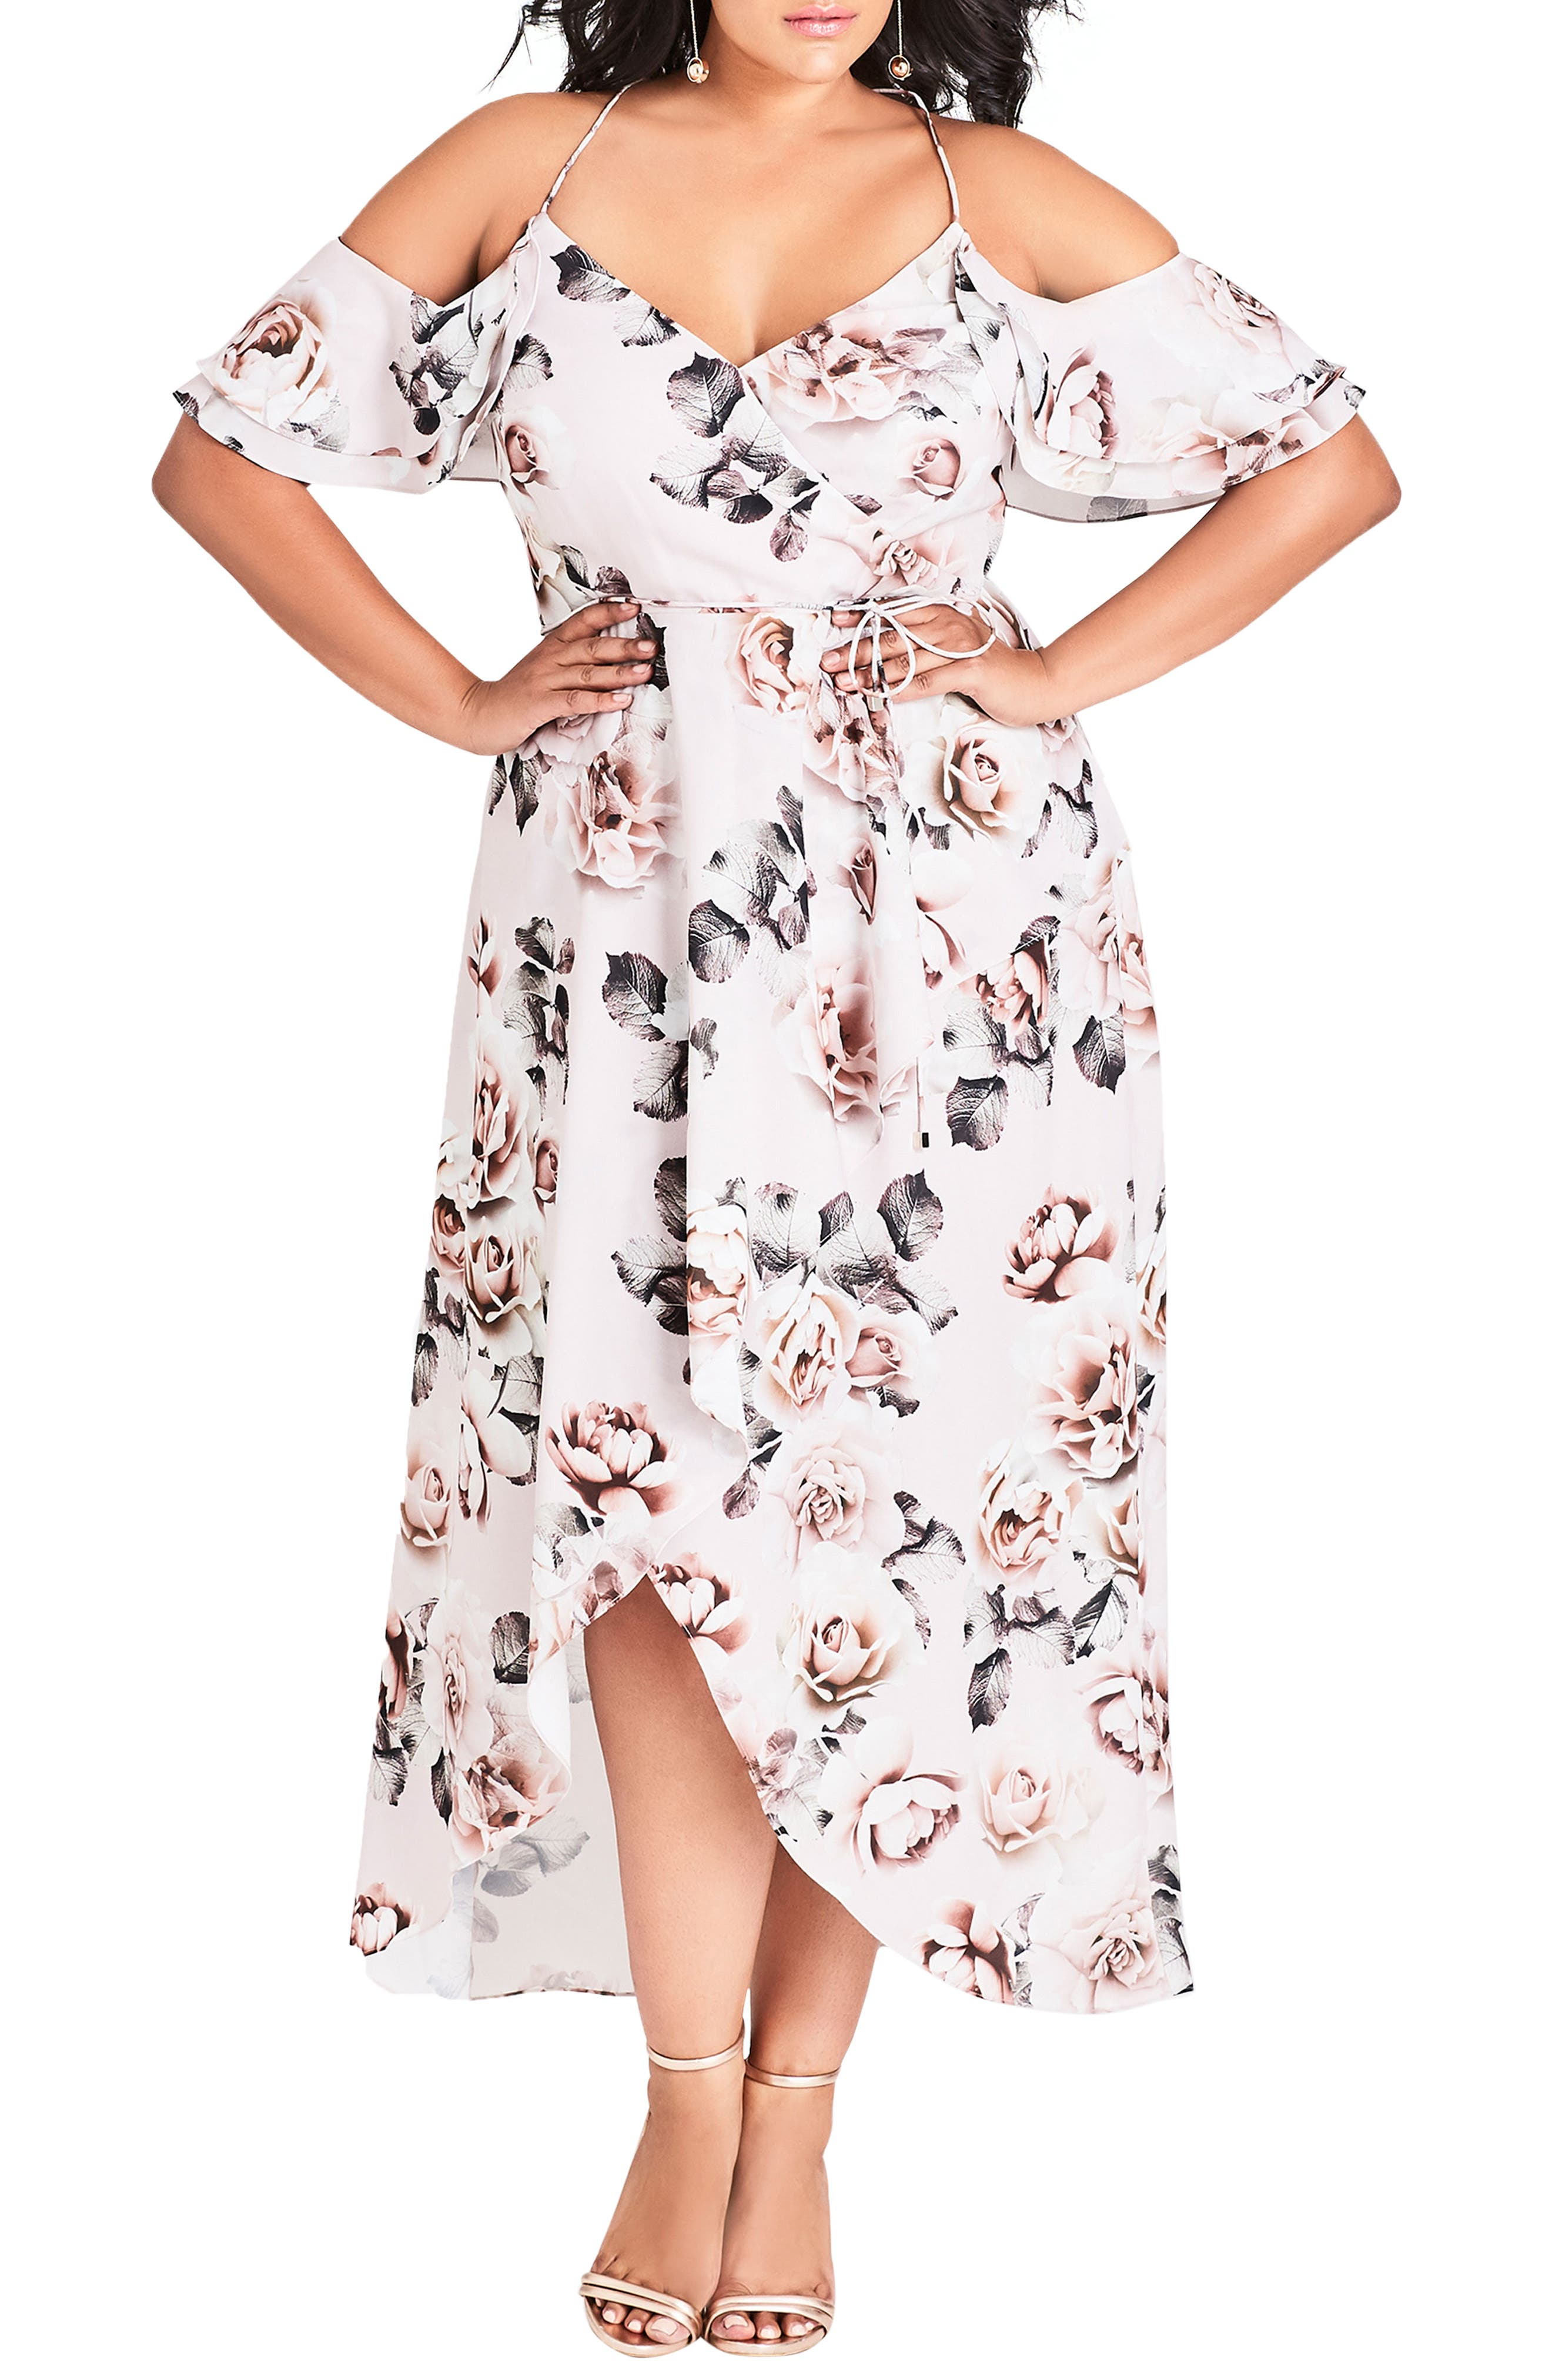 CITY CHIC Champagne Rose Cold Shoulder Maxi Dress, Main, color, CHAMPAGNE ROSE